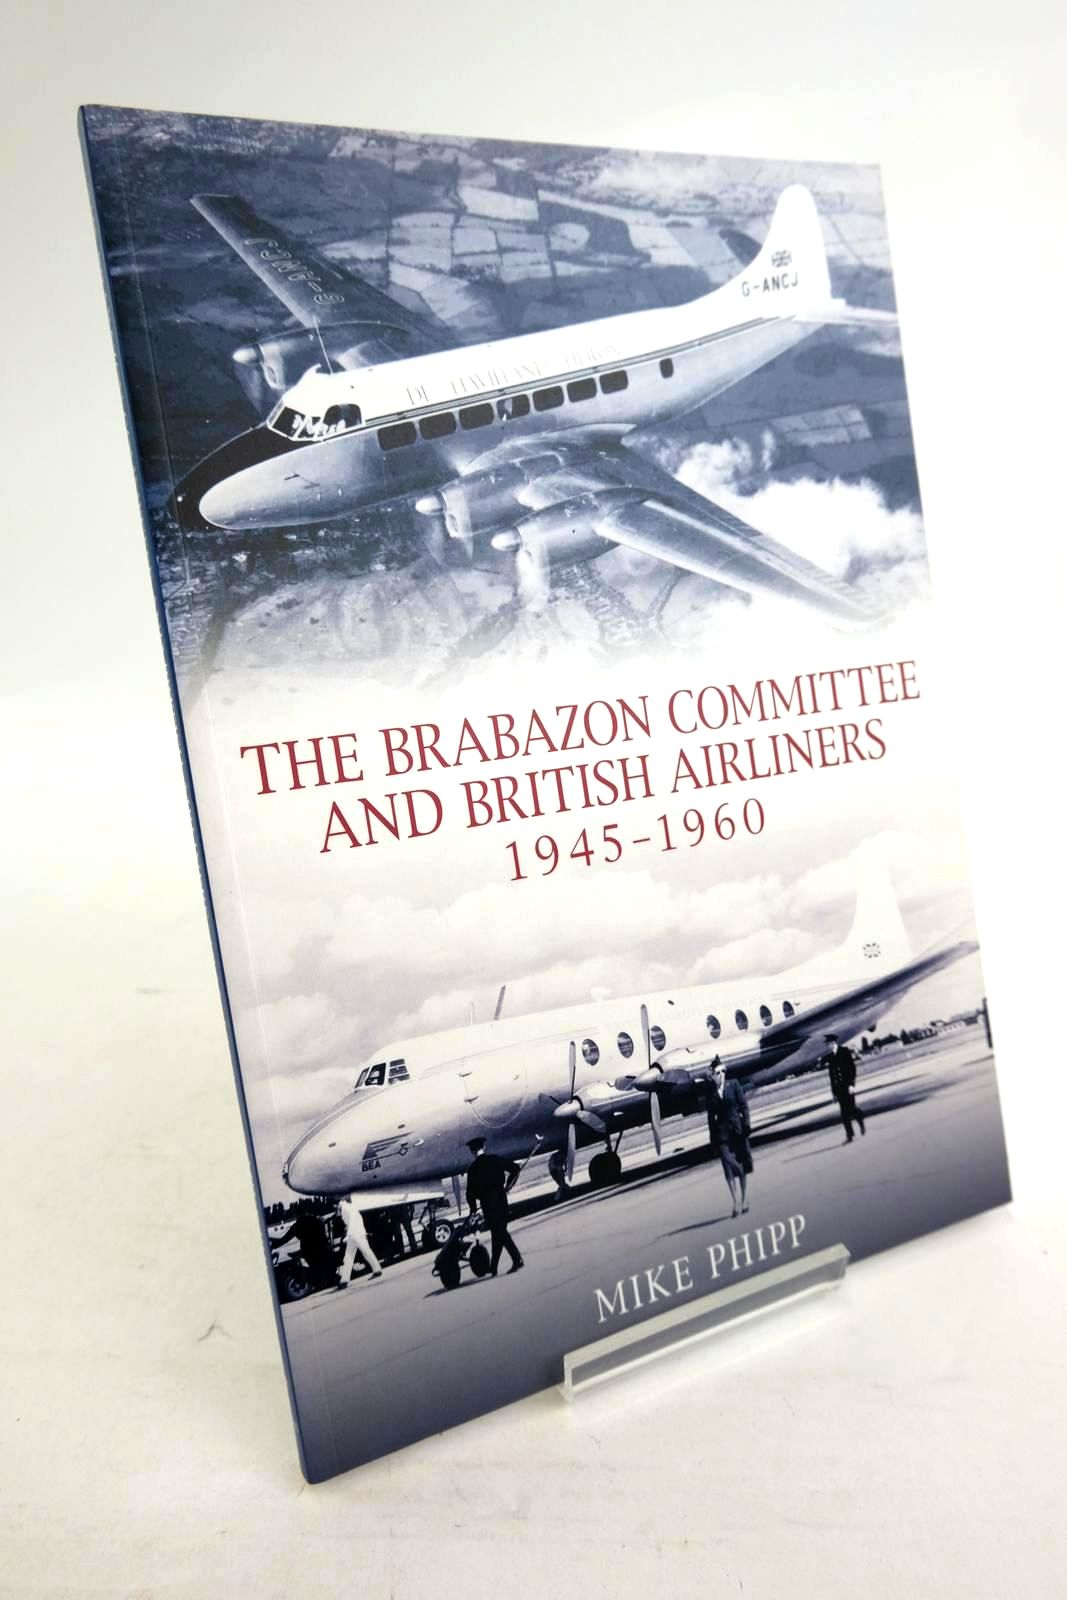 Photo of THE BRABAZON COMMITTEE AND BRITISH AIRLINERS 1945-1960 written by Phipp, Mike published by Tempus (STOCK CODE: 1320275)  for sale by Stella & Rose's Books